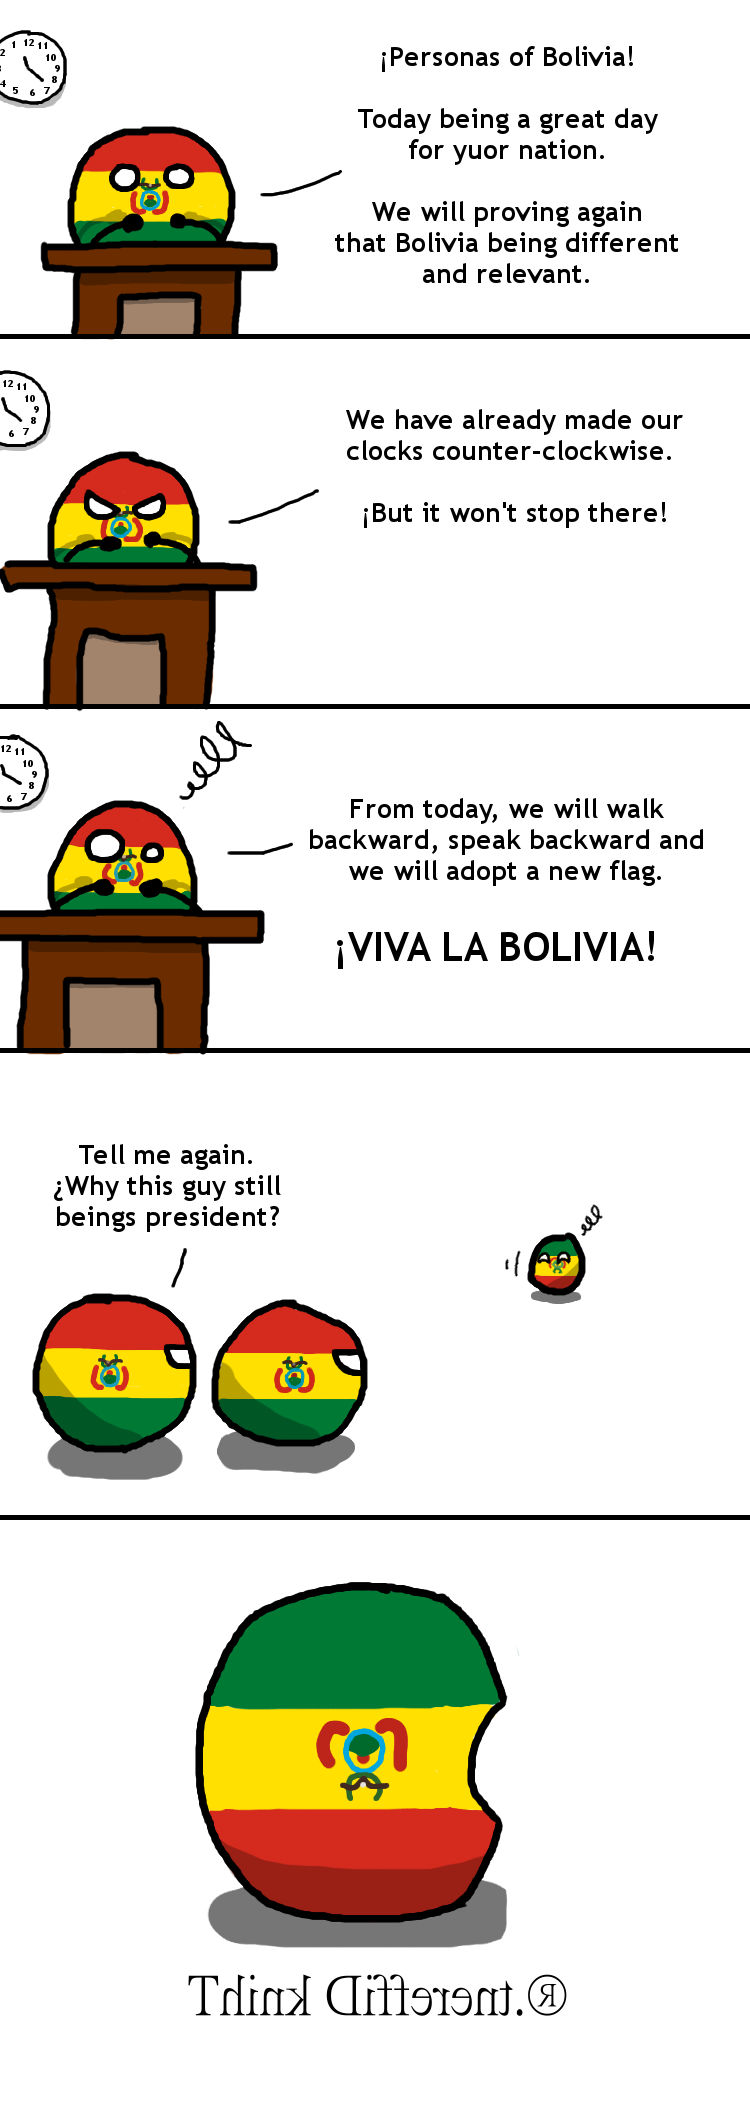 2019 Bolivian Protests